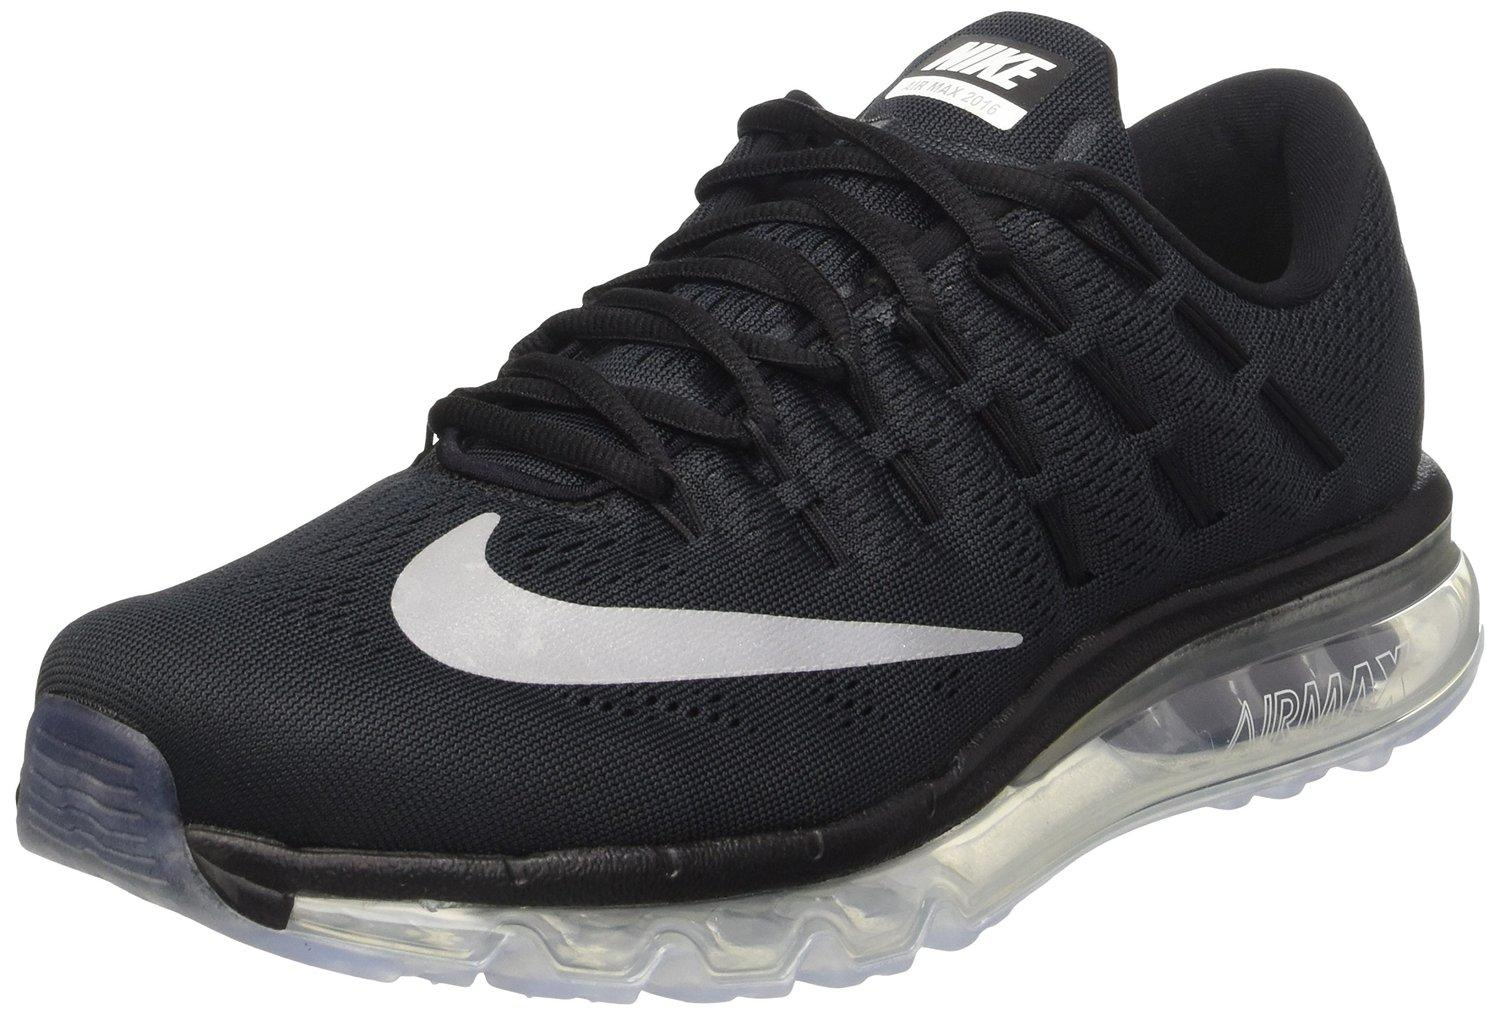 Best Online Nike Shoe Deals